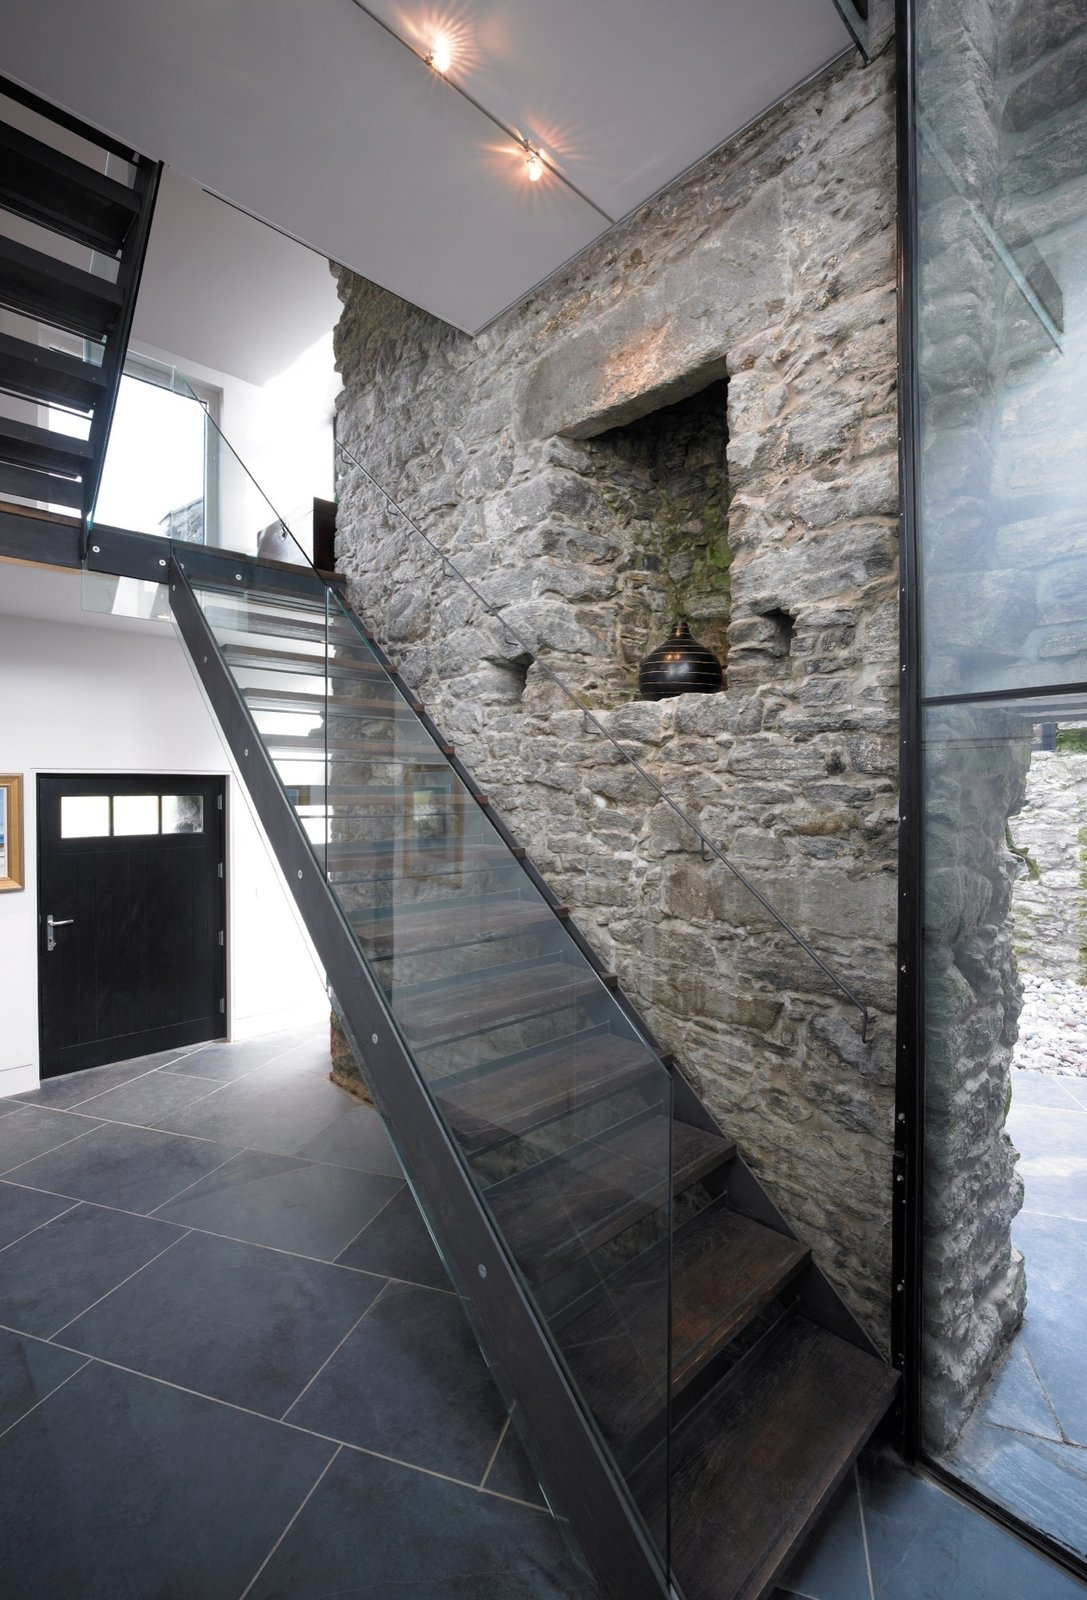 On the interior, existing stone walls are often left exposed Tagged: Staircase, Wood Tread, and Glass Railing.  Photo 5 of 19 in Rising From the Ruins: Homes Built on Architectural Remains